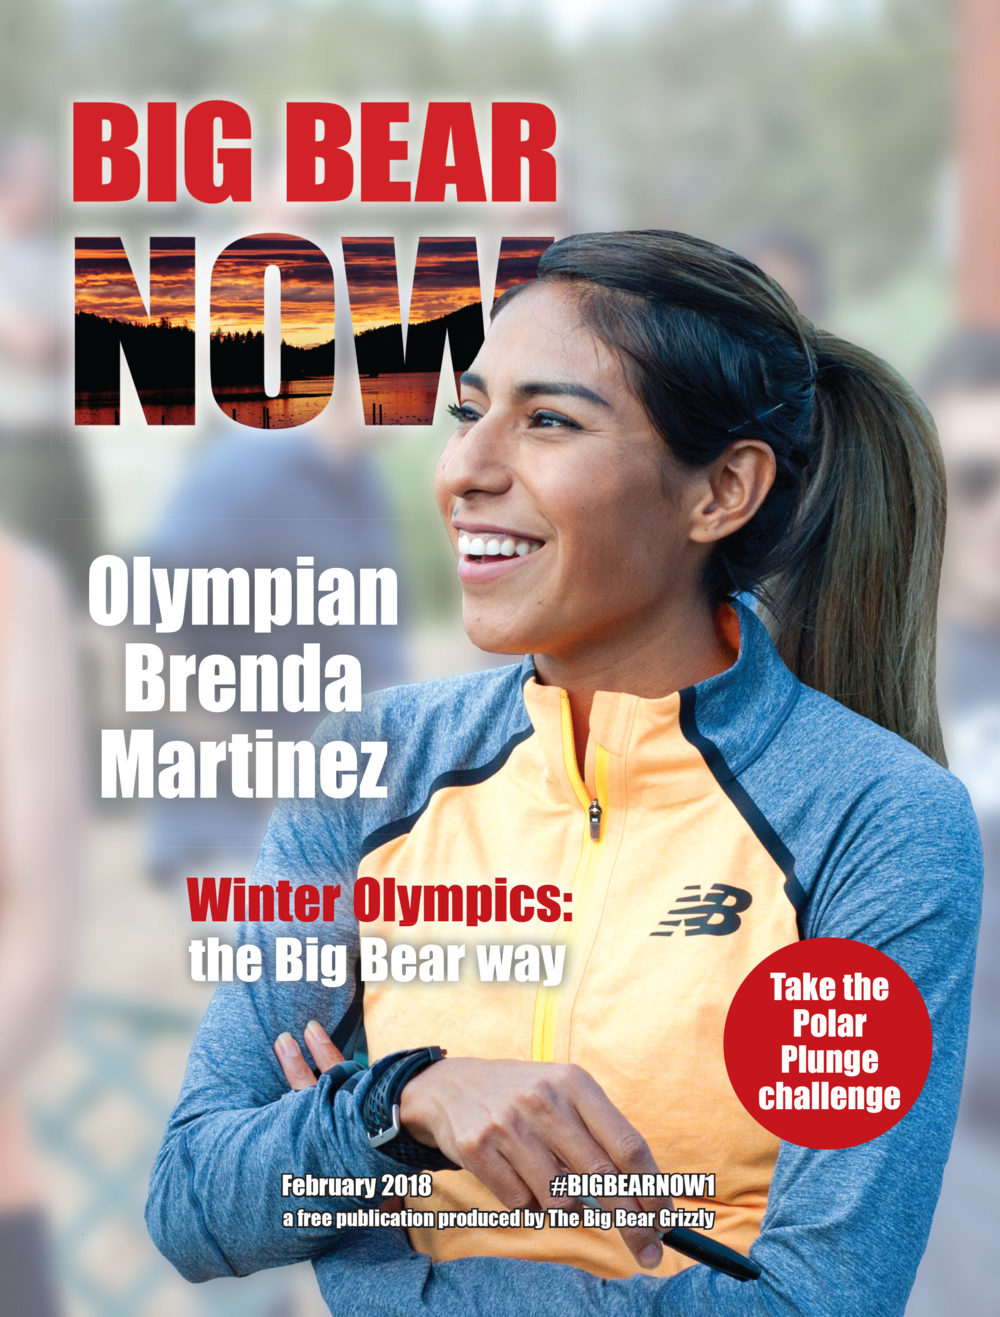 Natalie designed the February 2018 issue of Big Bear Now magazine and kept the layout simple, yet consistent with the magazine's overall design.